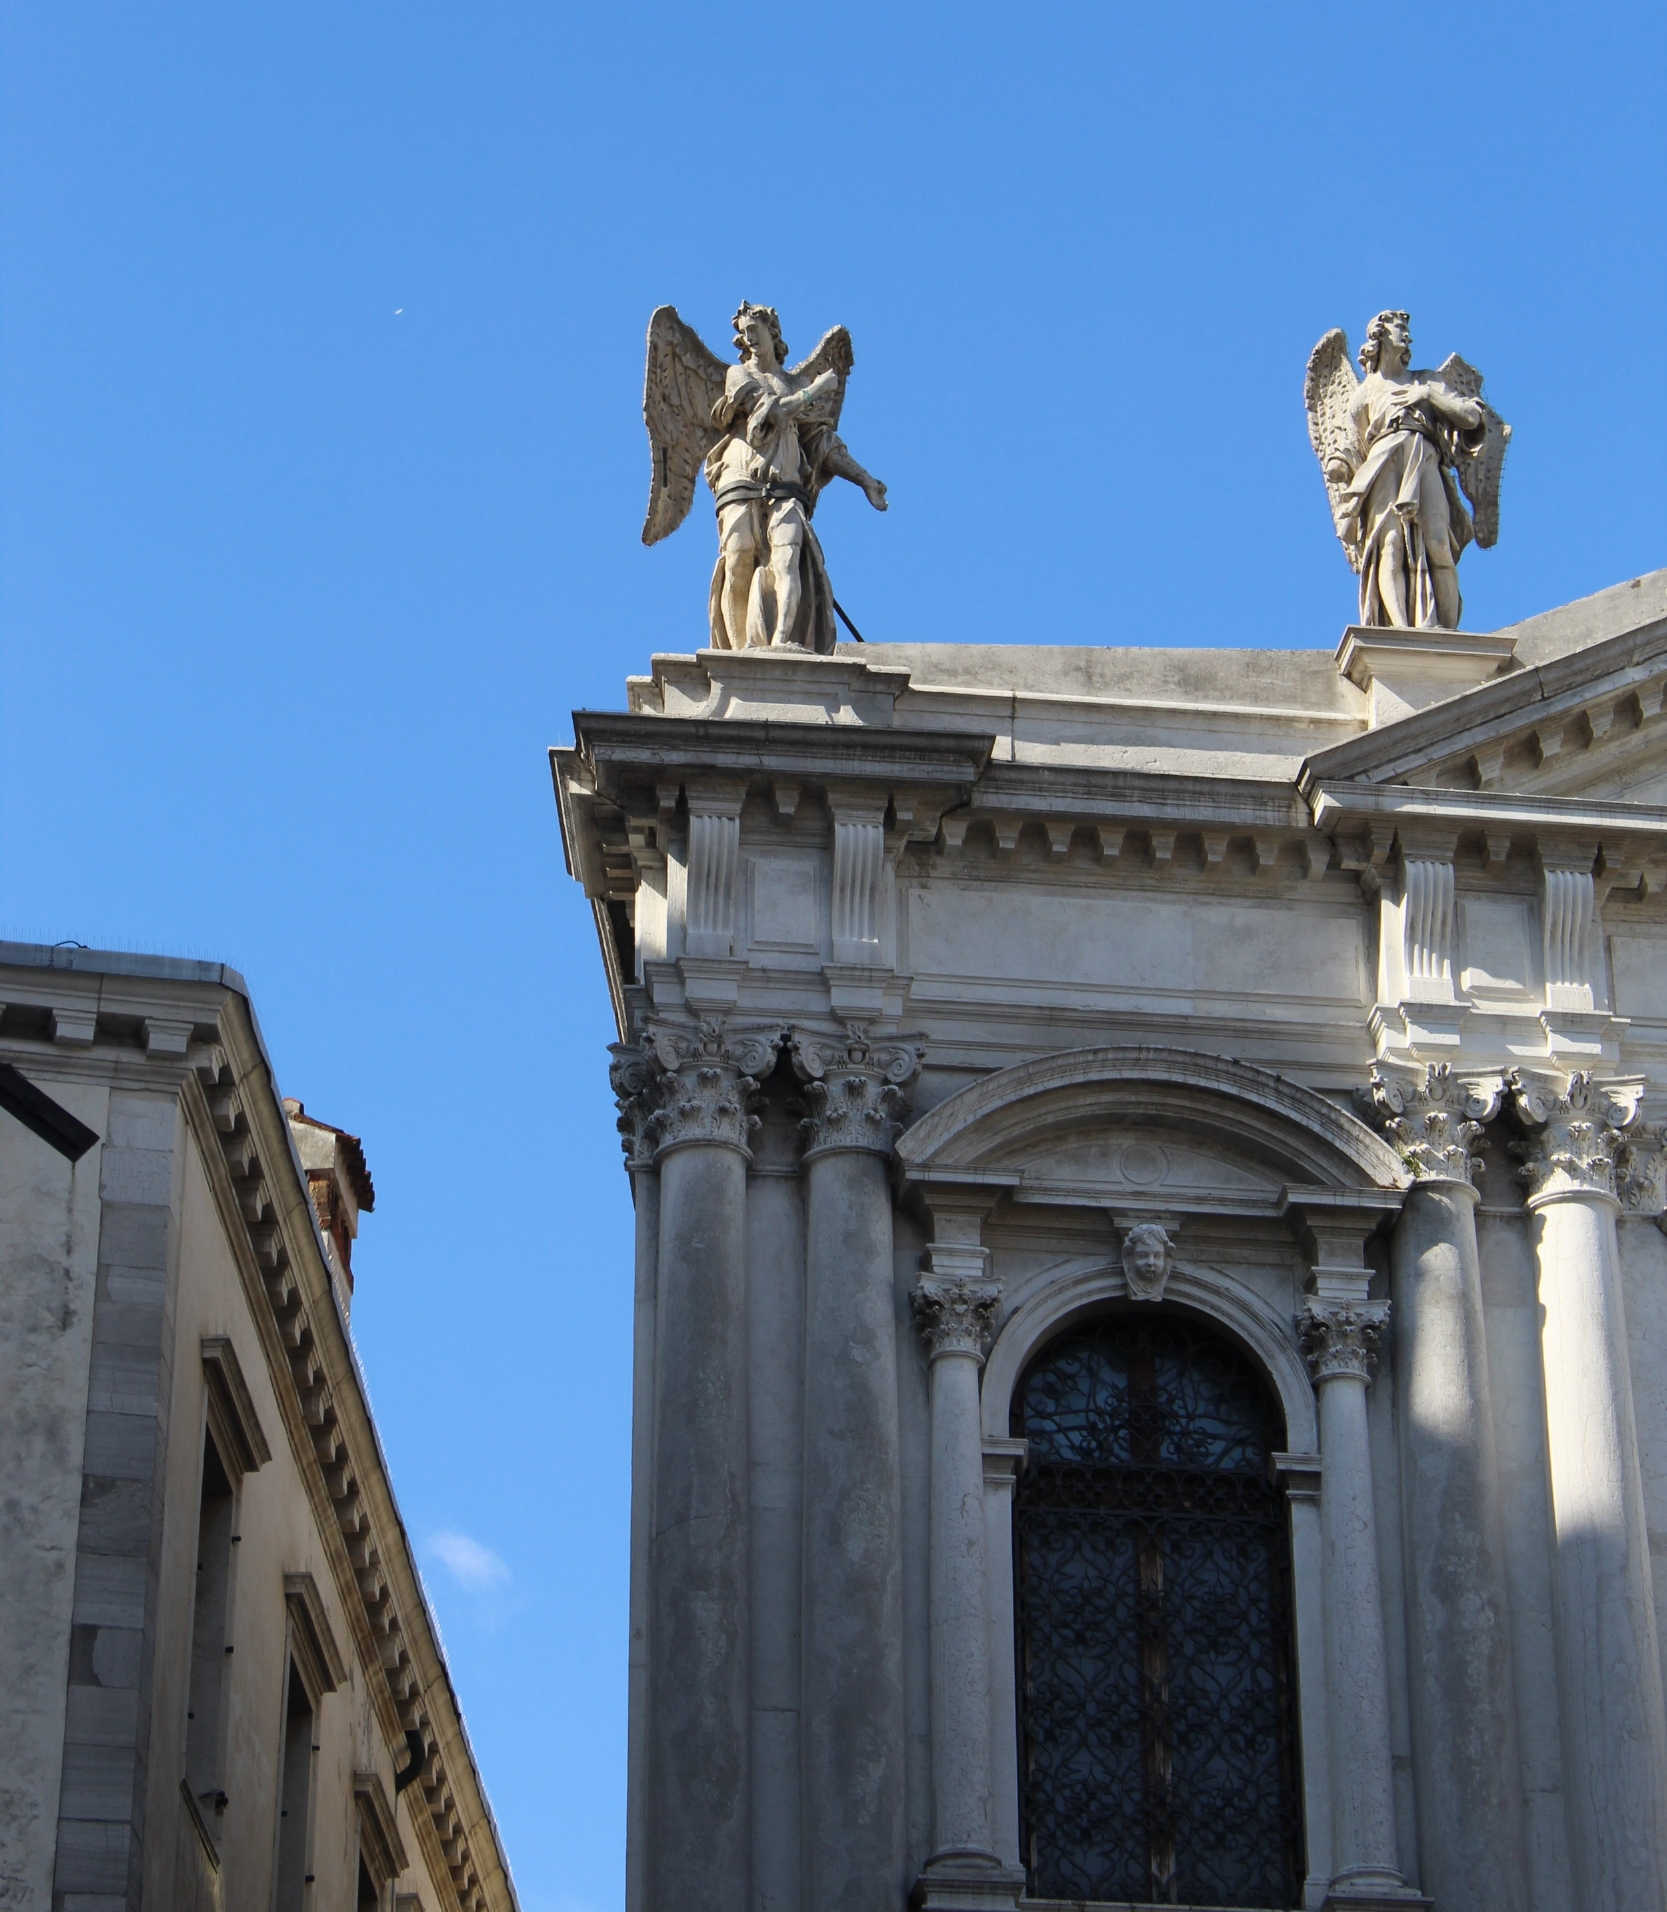 """Stone angels looking down."" - This was the view from our Airbnb in Venice."